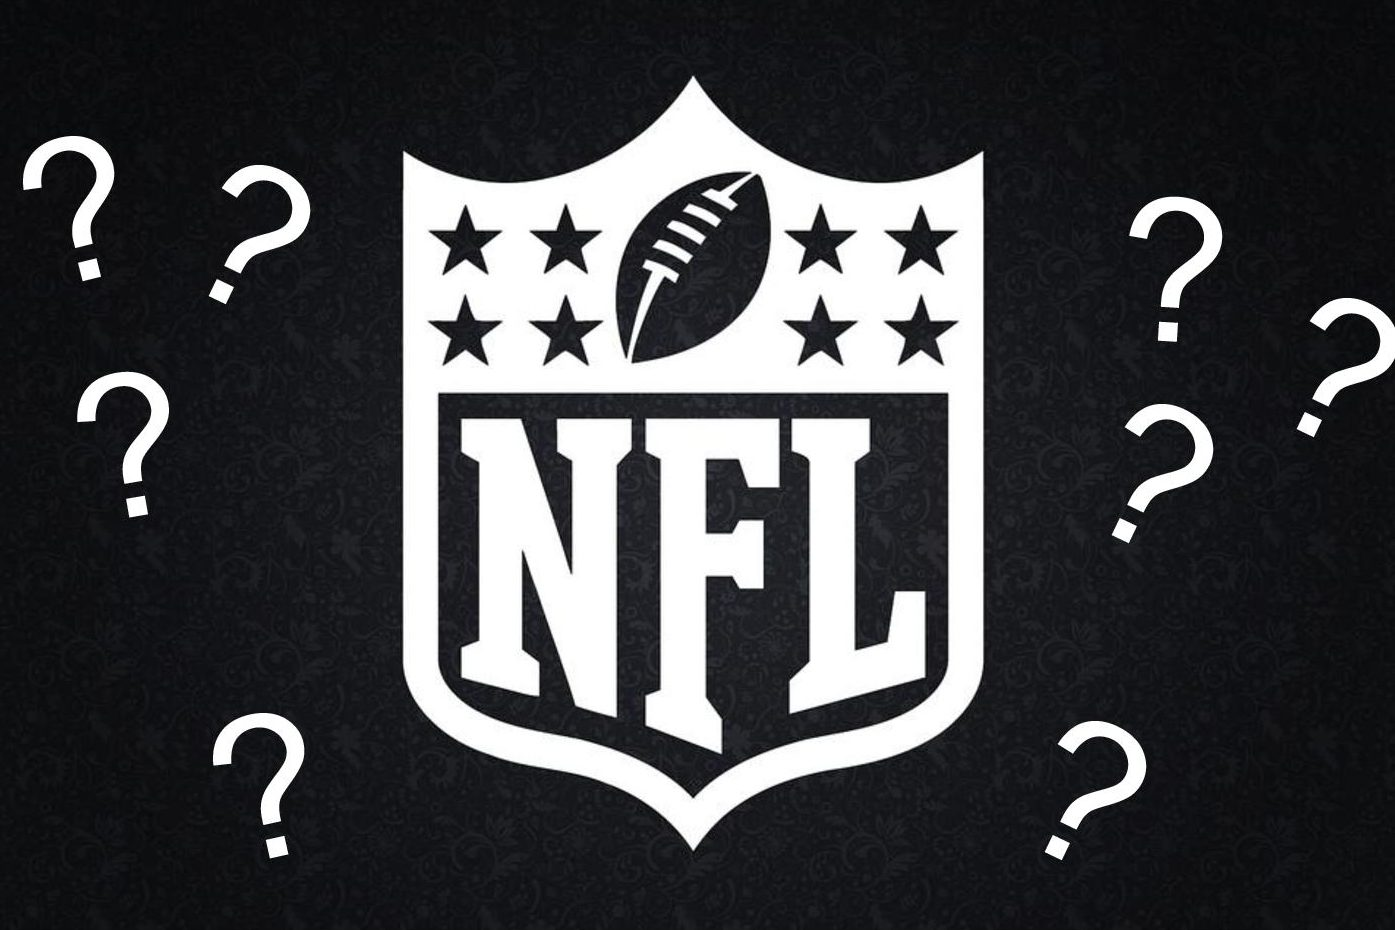 Glago questions five potential turning points in NFL history had circumstances been different.